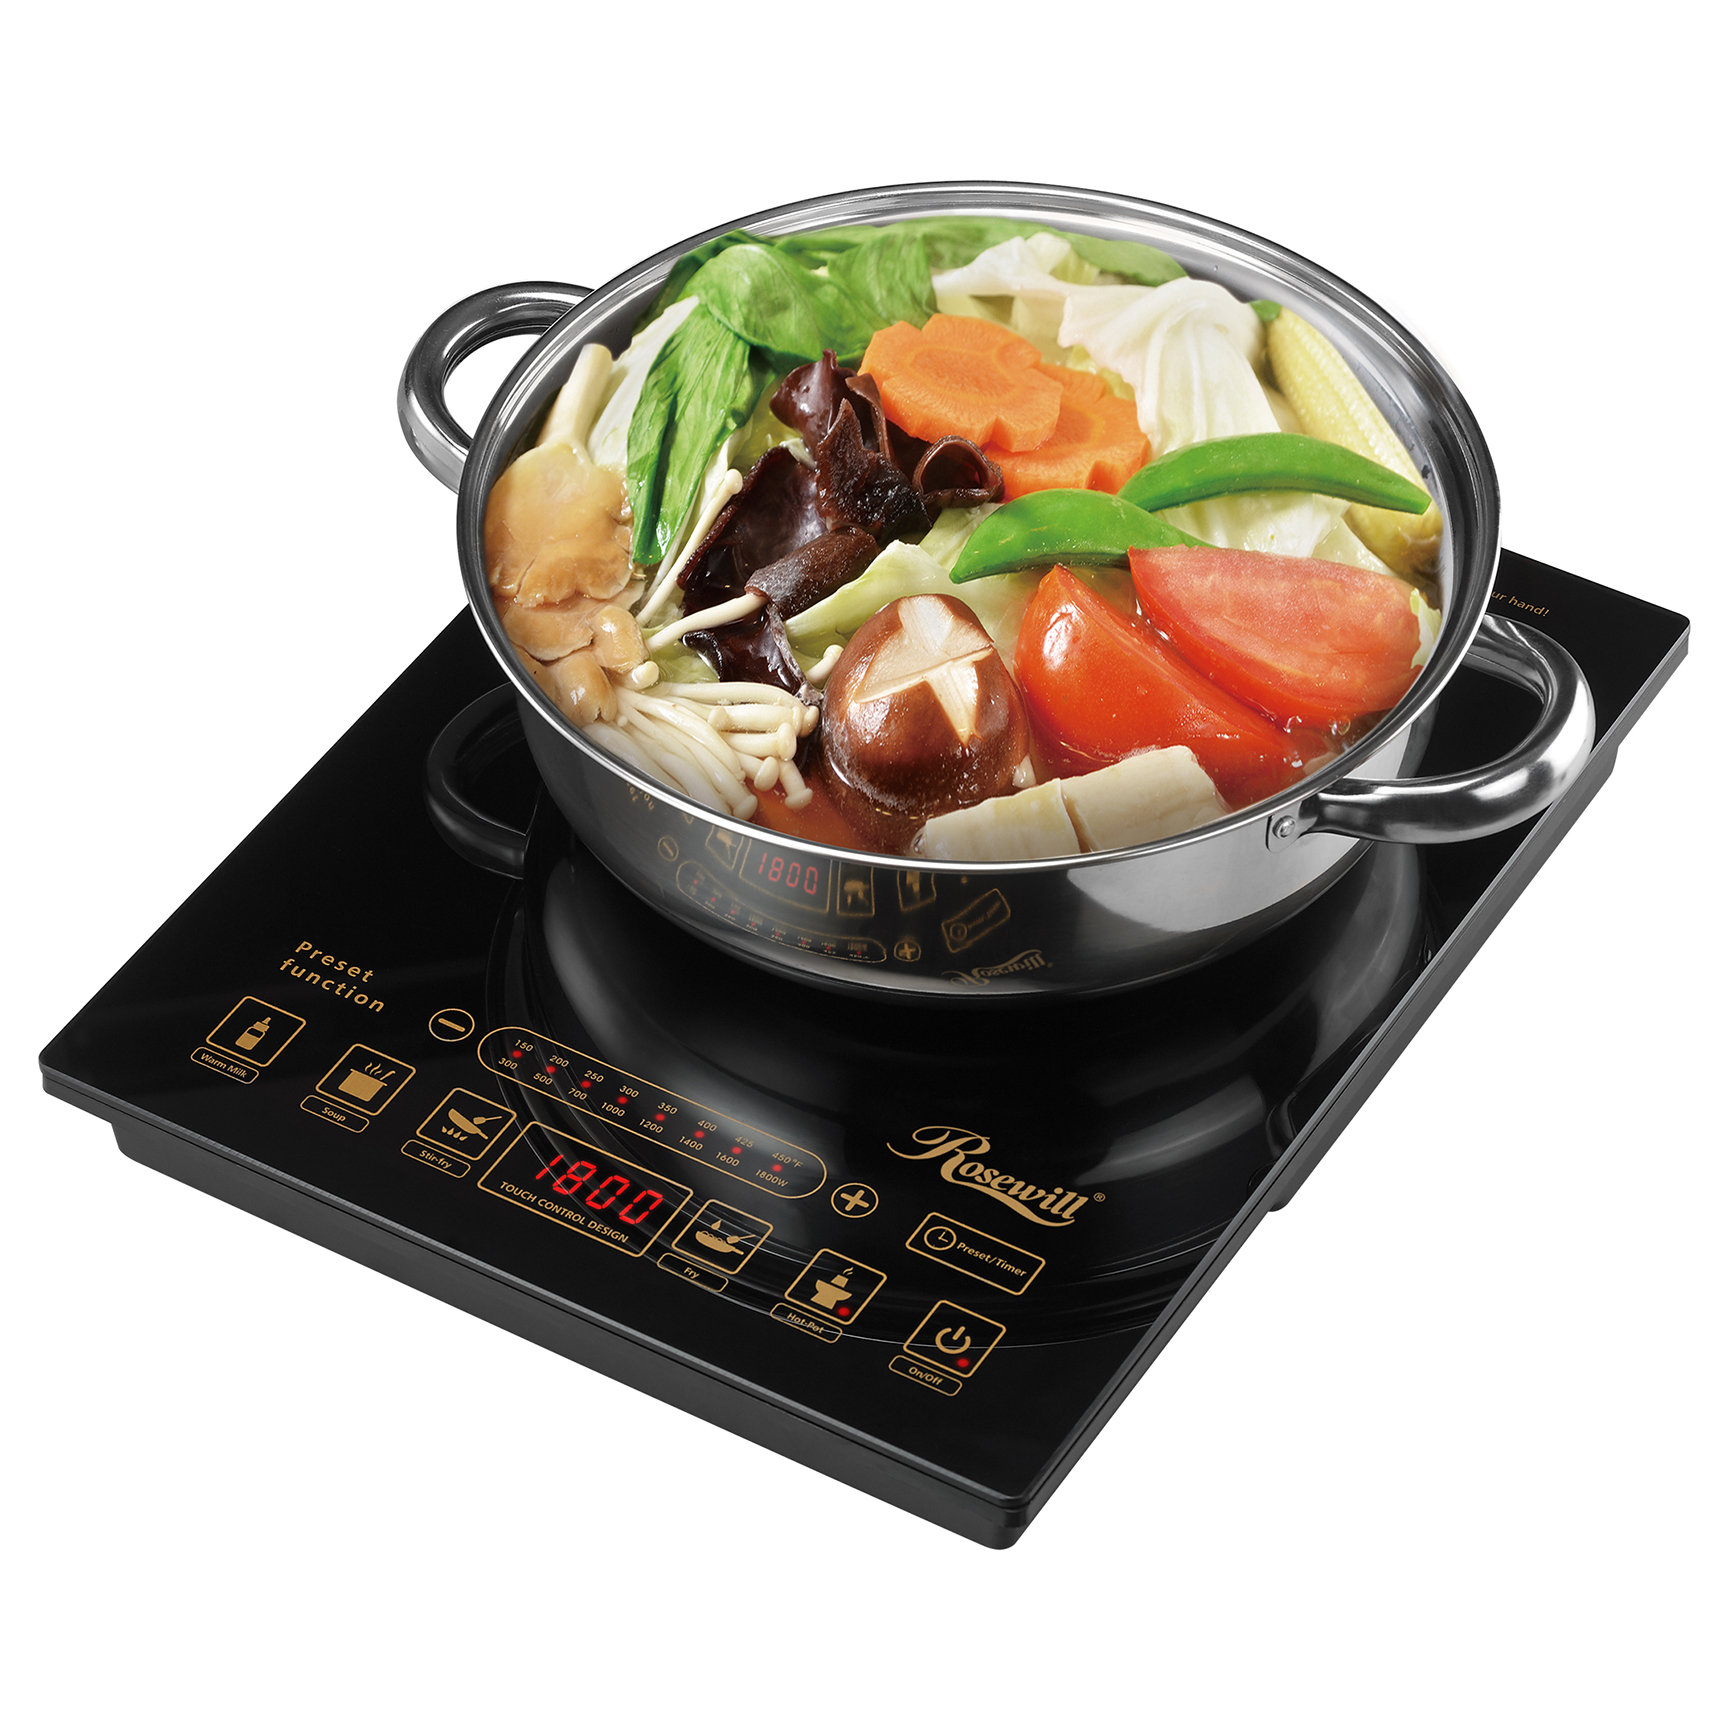 Rosewill Portable Induction Cooker Electric Hot Plate Includes 3.5Qt Stainless Steel Pot RHAI-16002